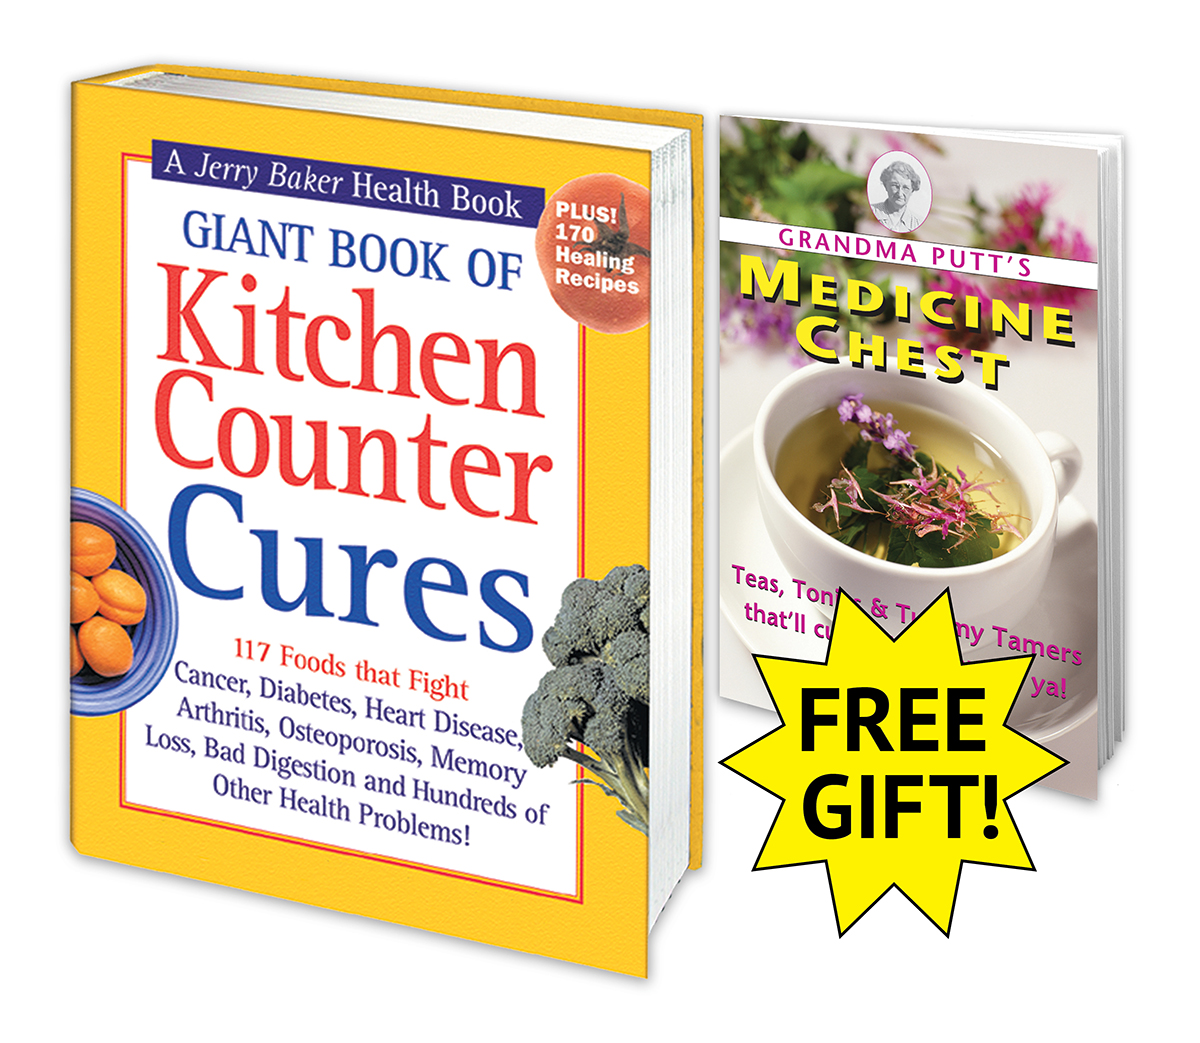 Giant Book of Kitchen Counter Cures